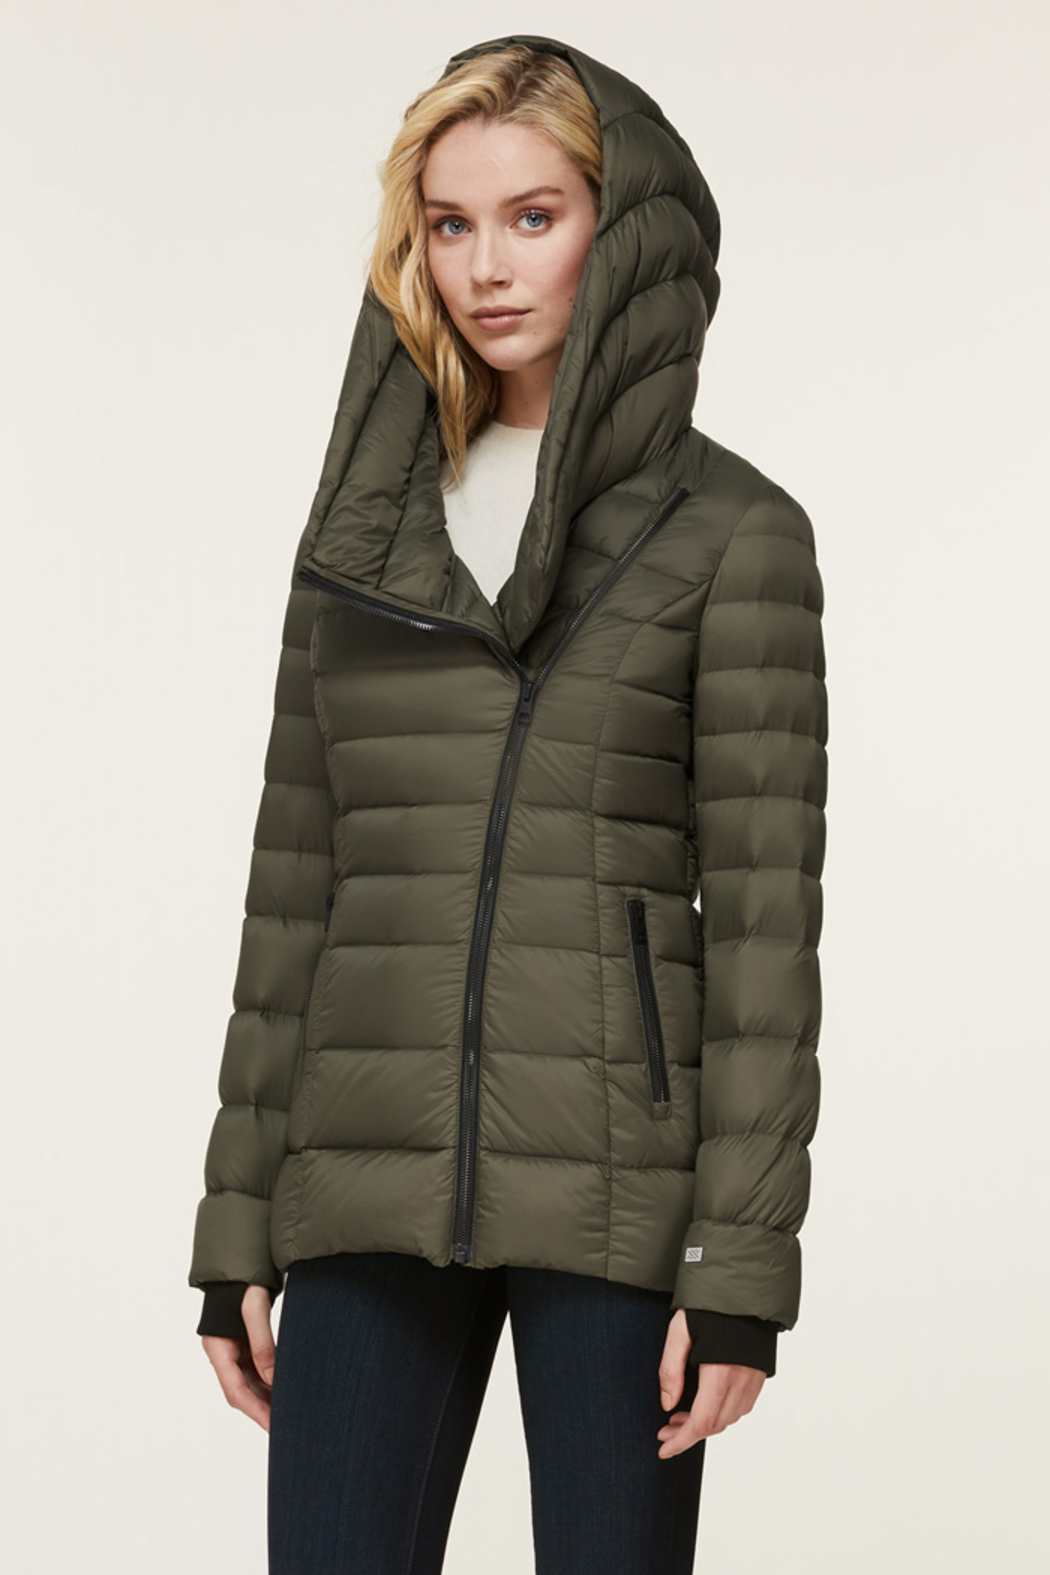 Soia & Kyo SOIA & KYO LIGHTWEIGHT DOWN COAT - Side Cropped Image